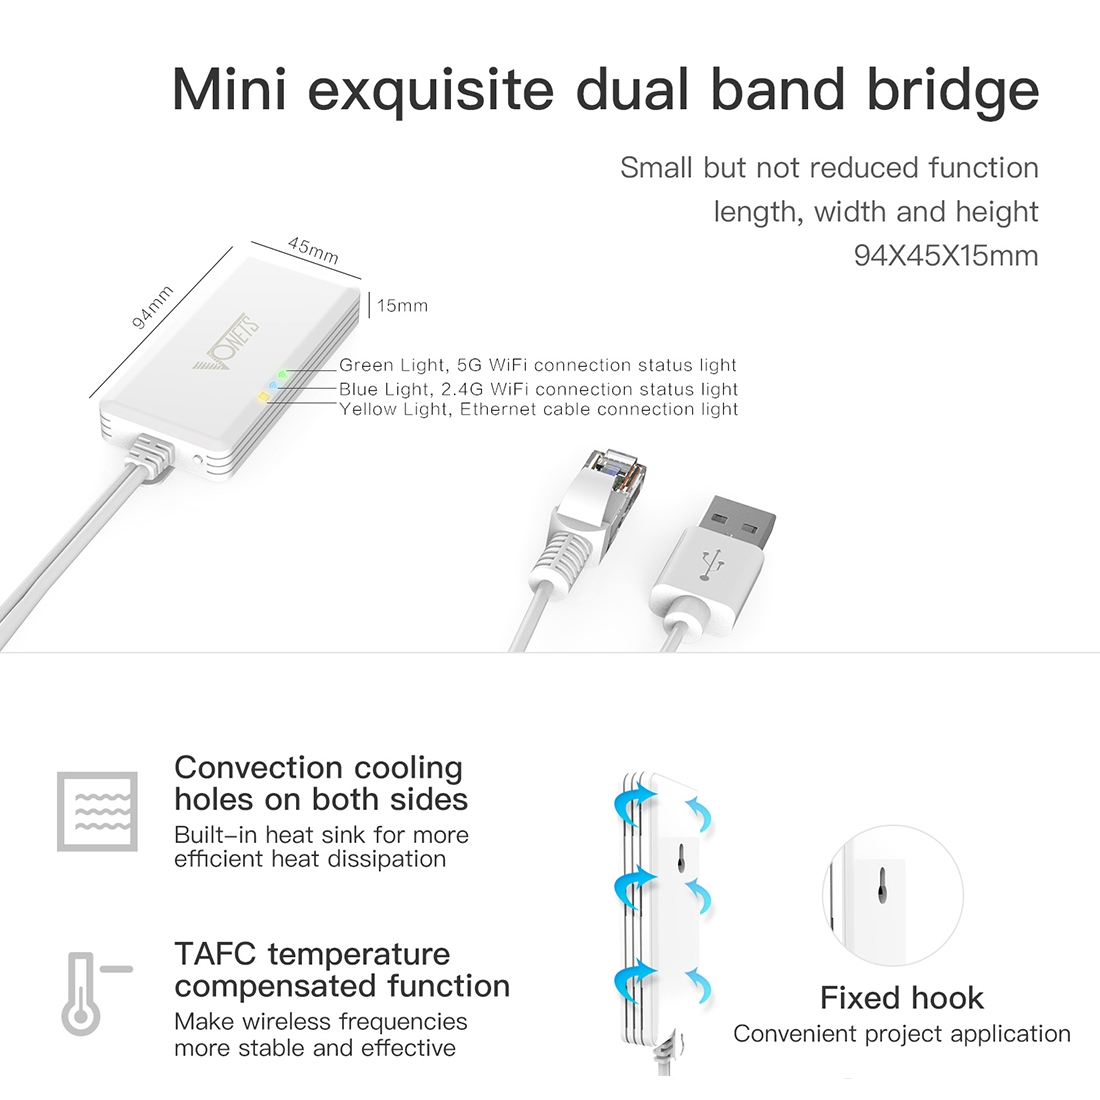 VONETS VAP11AC 5G / 2 4G Mini Wireless Bridge 300Mbps + 900Mbps WiFi  Repeater, Support Video Surveillance & Control (White)